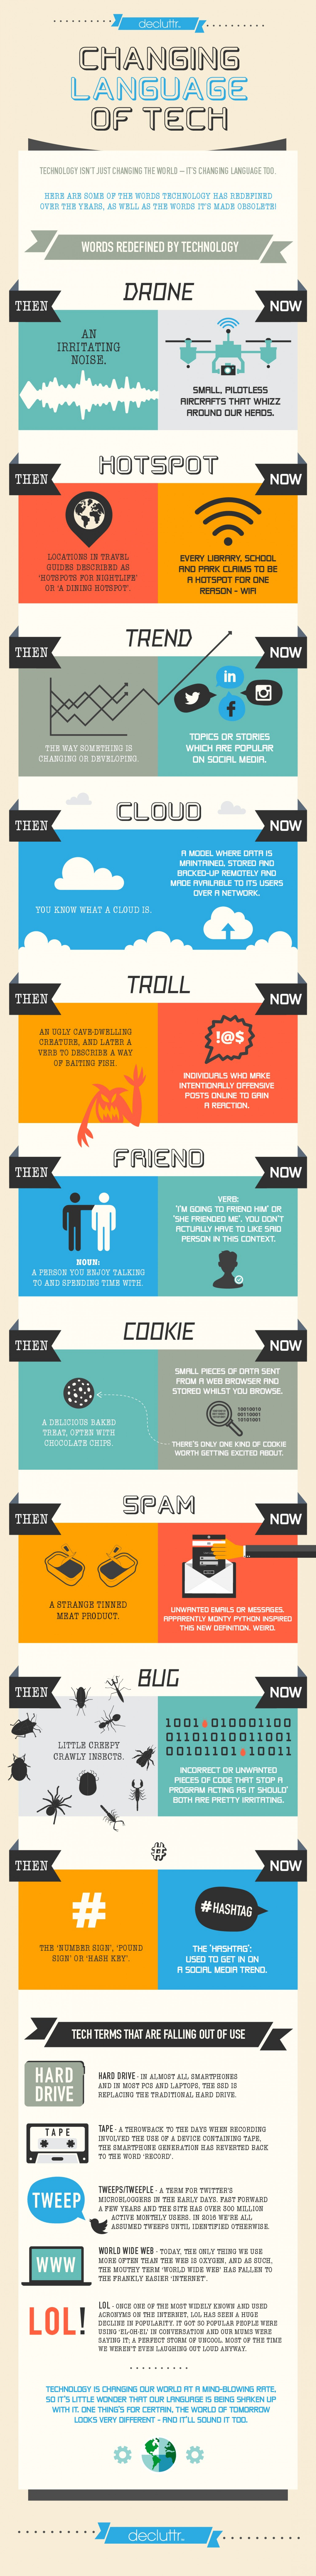 How has technology changed language? Infographic